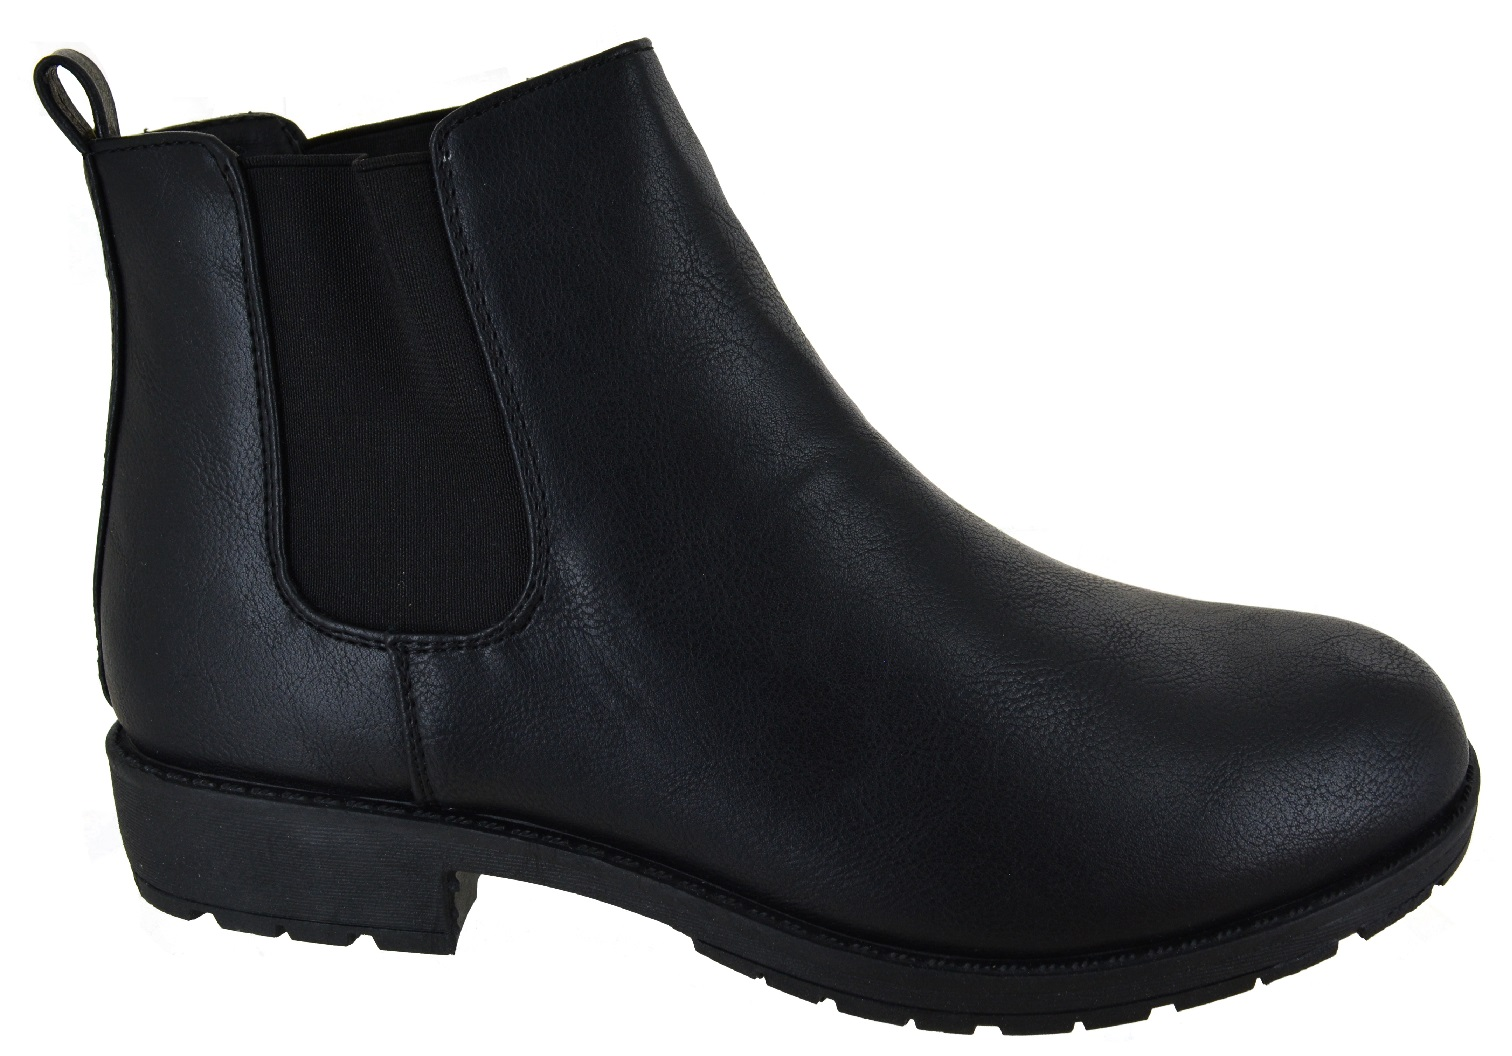 LADIES-WOMENS-CHELSEA-DEALER-SLIP-ON-FLAT-ANKLE-CAUSAL-LOW-HEEL-SHOES-BOOTS-SIZE thumbnail 2